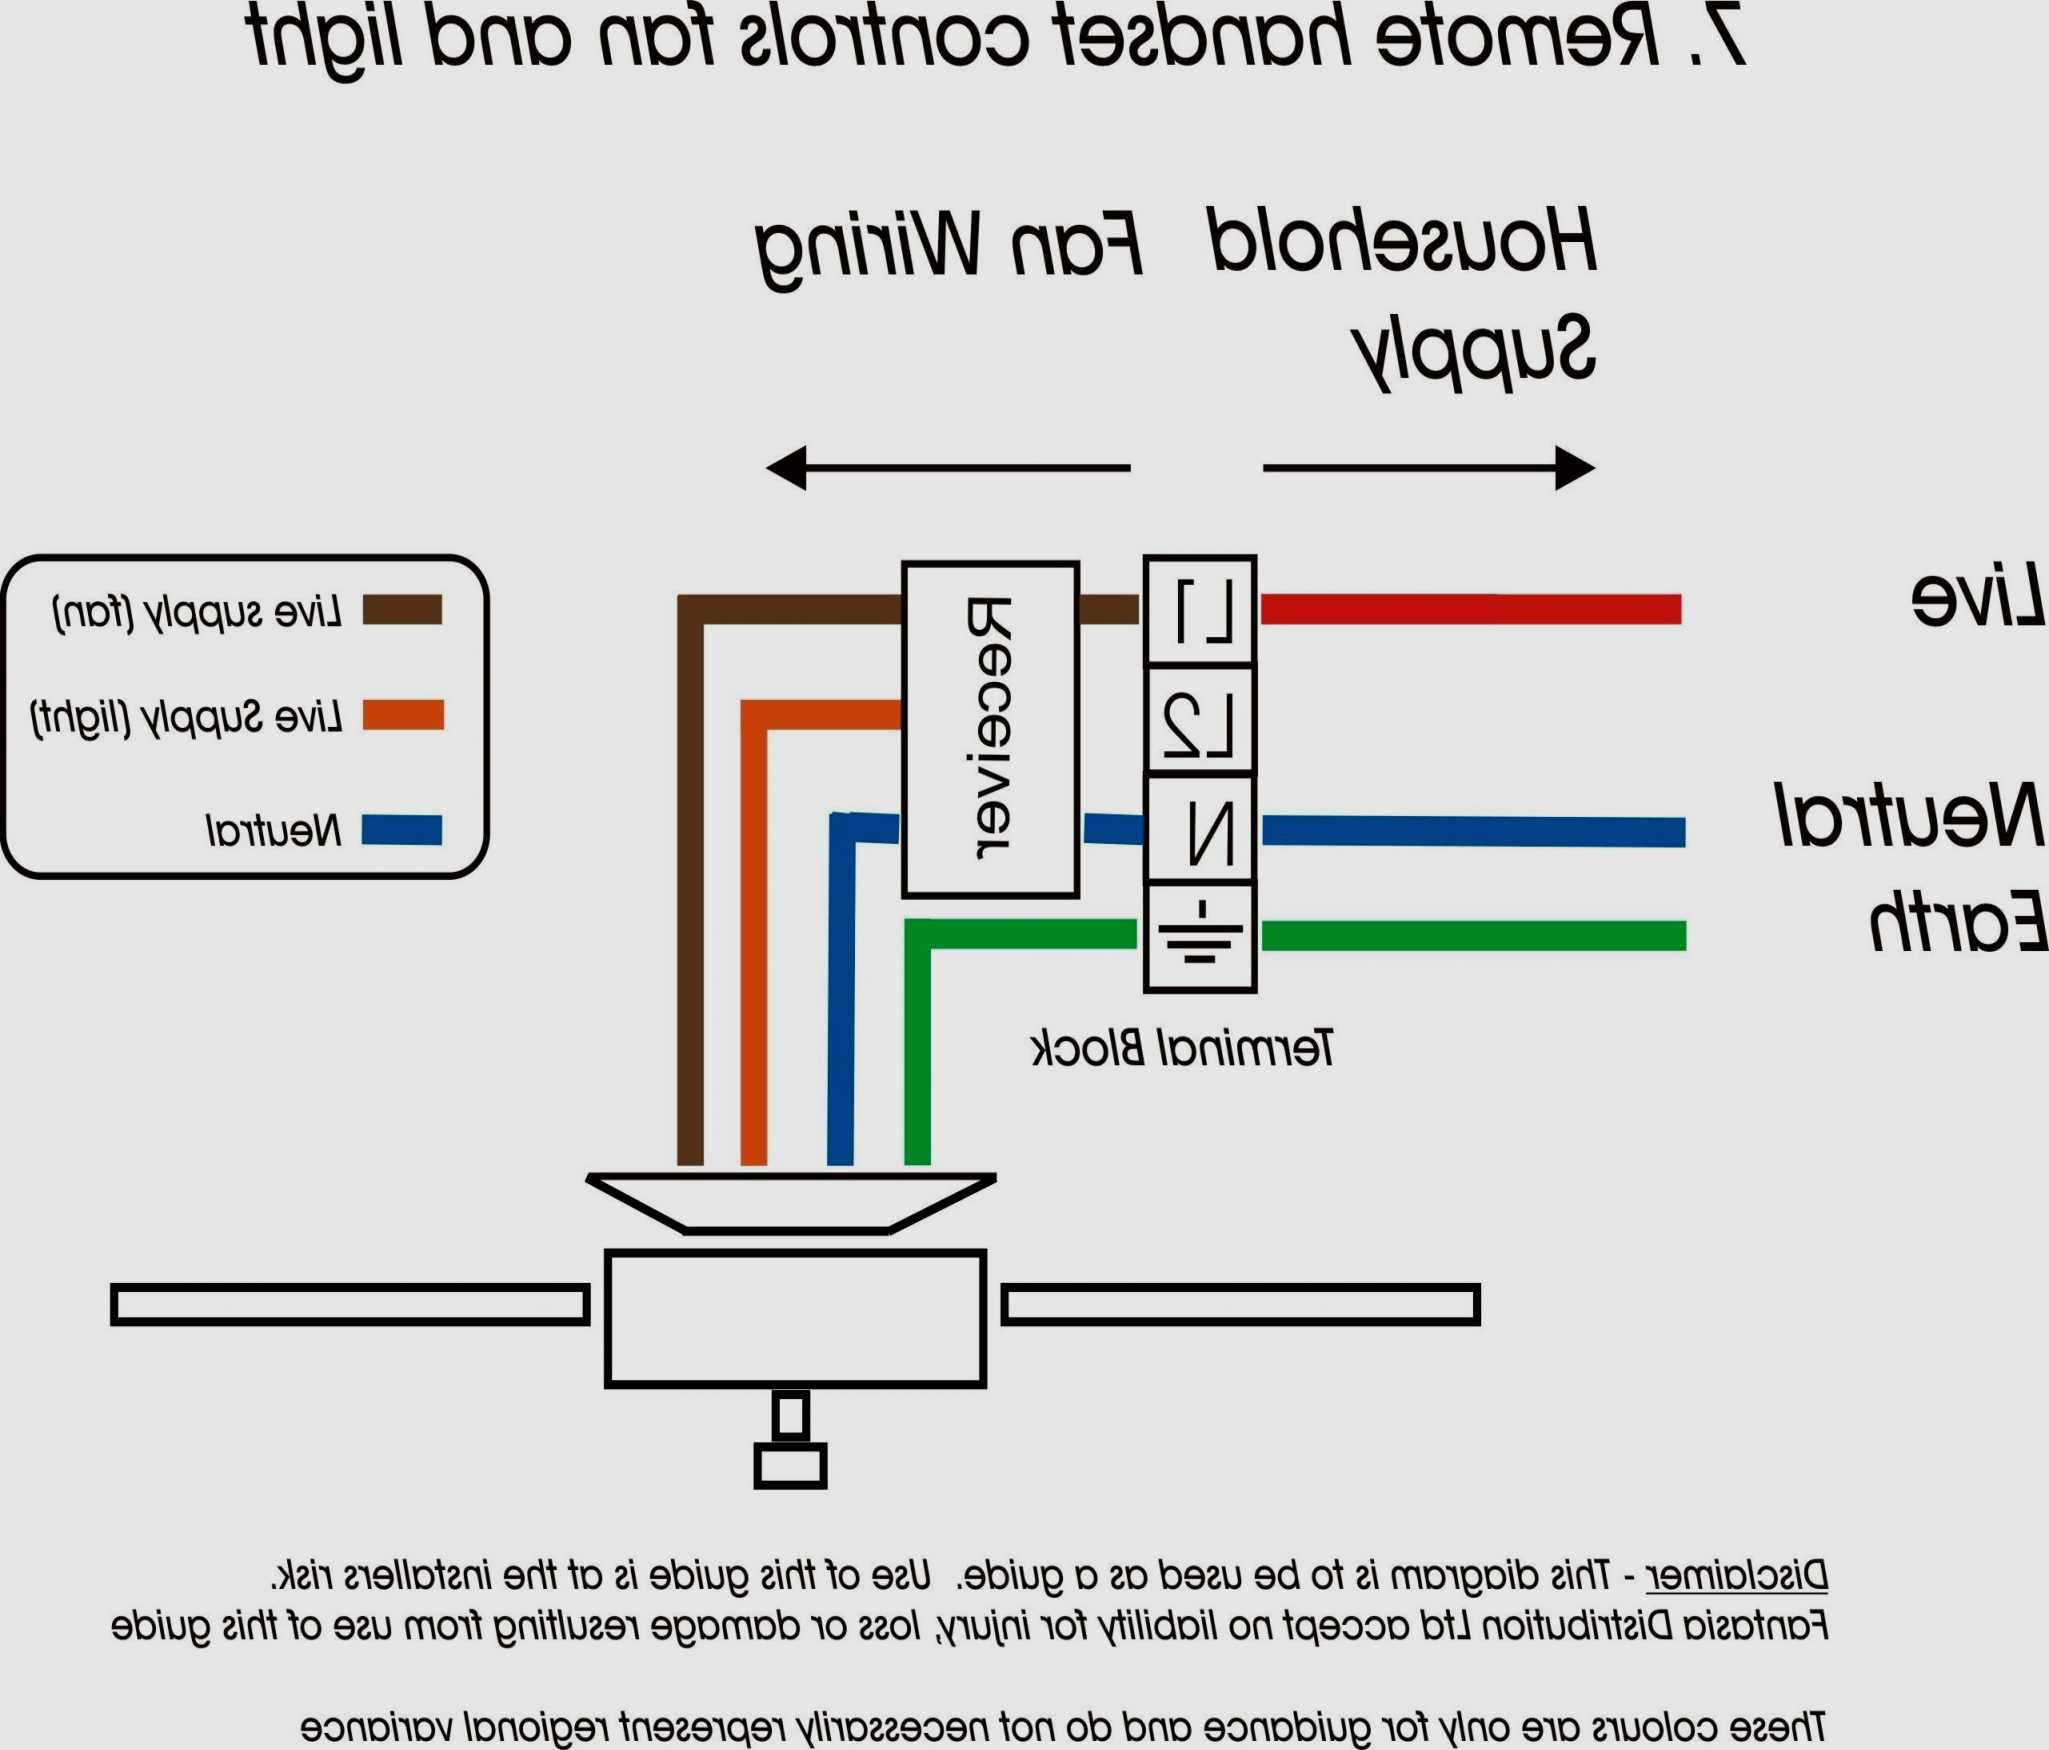 Basic Wiring Diagrams Best Of Light Fixture Wiring Diagram Best 2 - Light Fixture Wiring Diagram